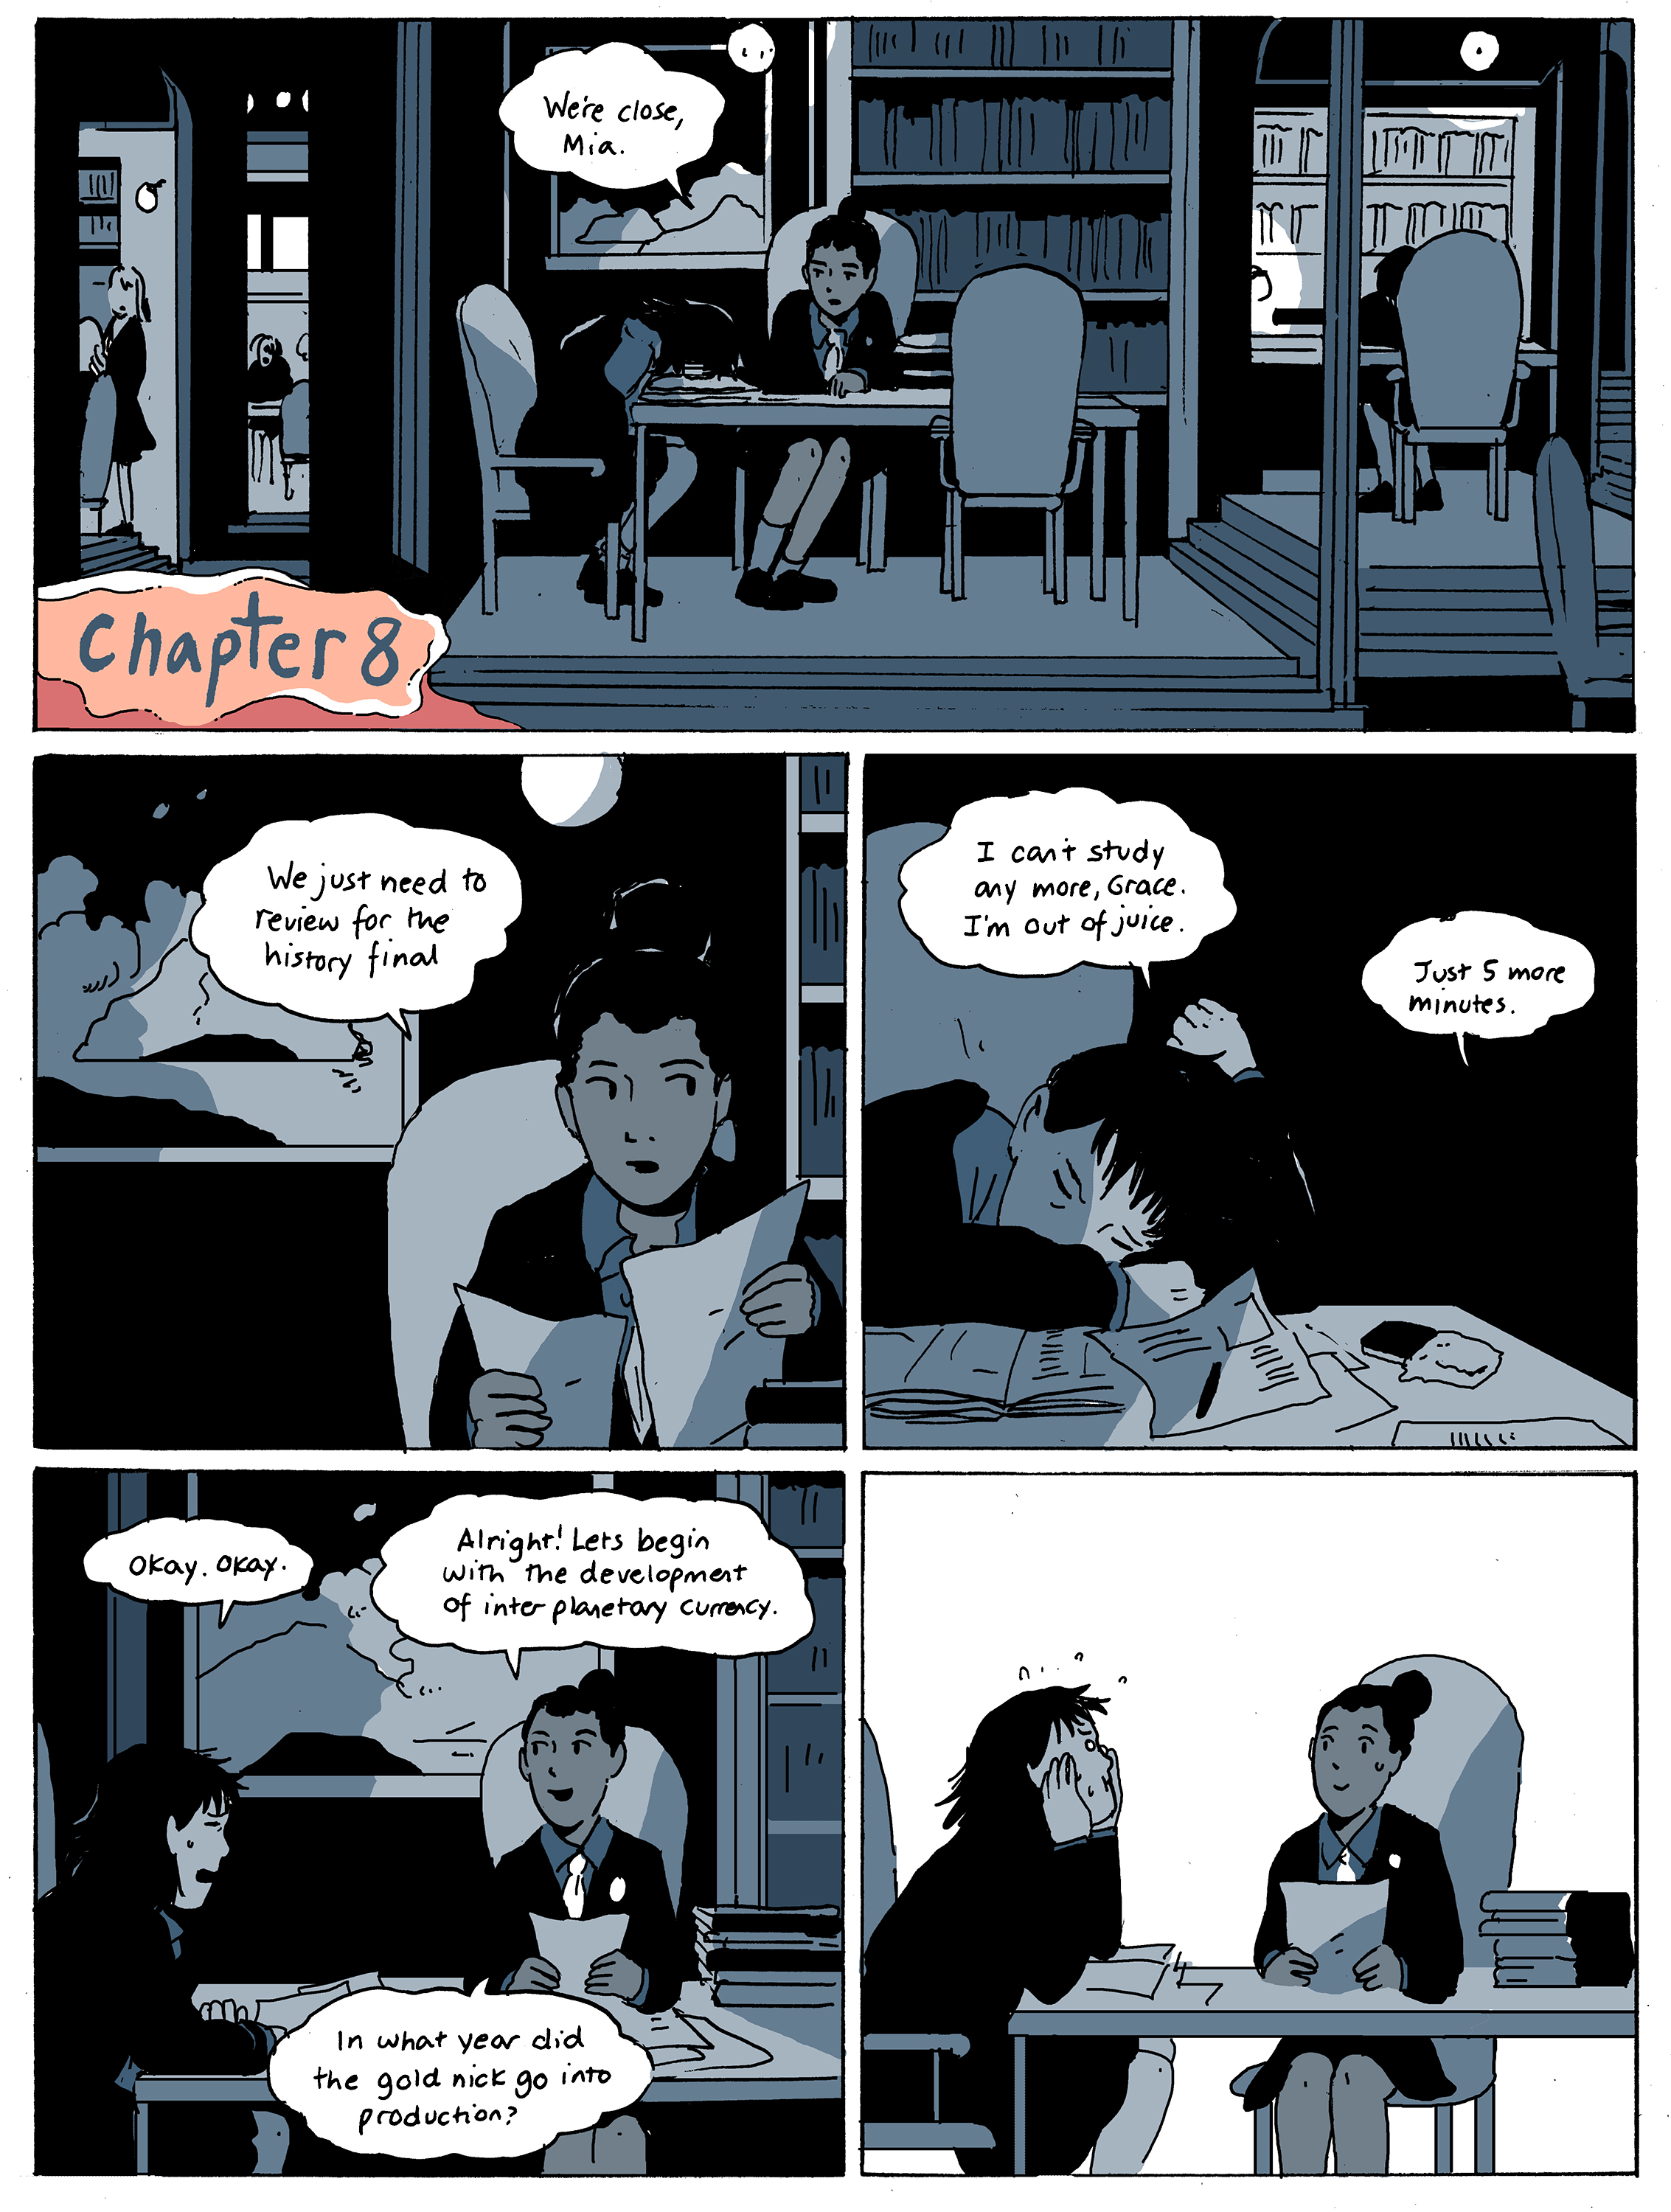 chapter08_page01.jpg